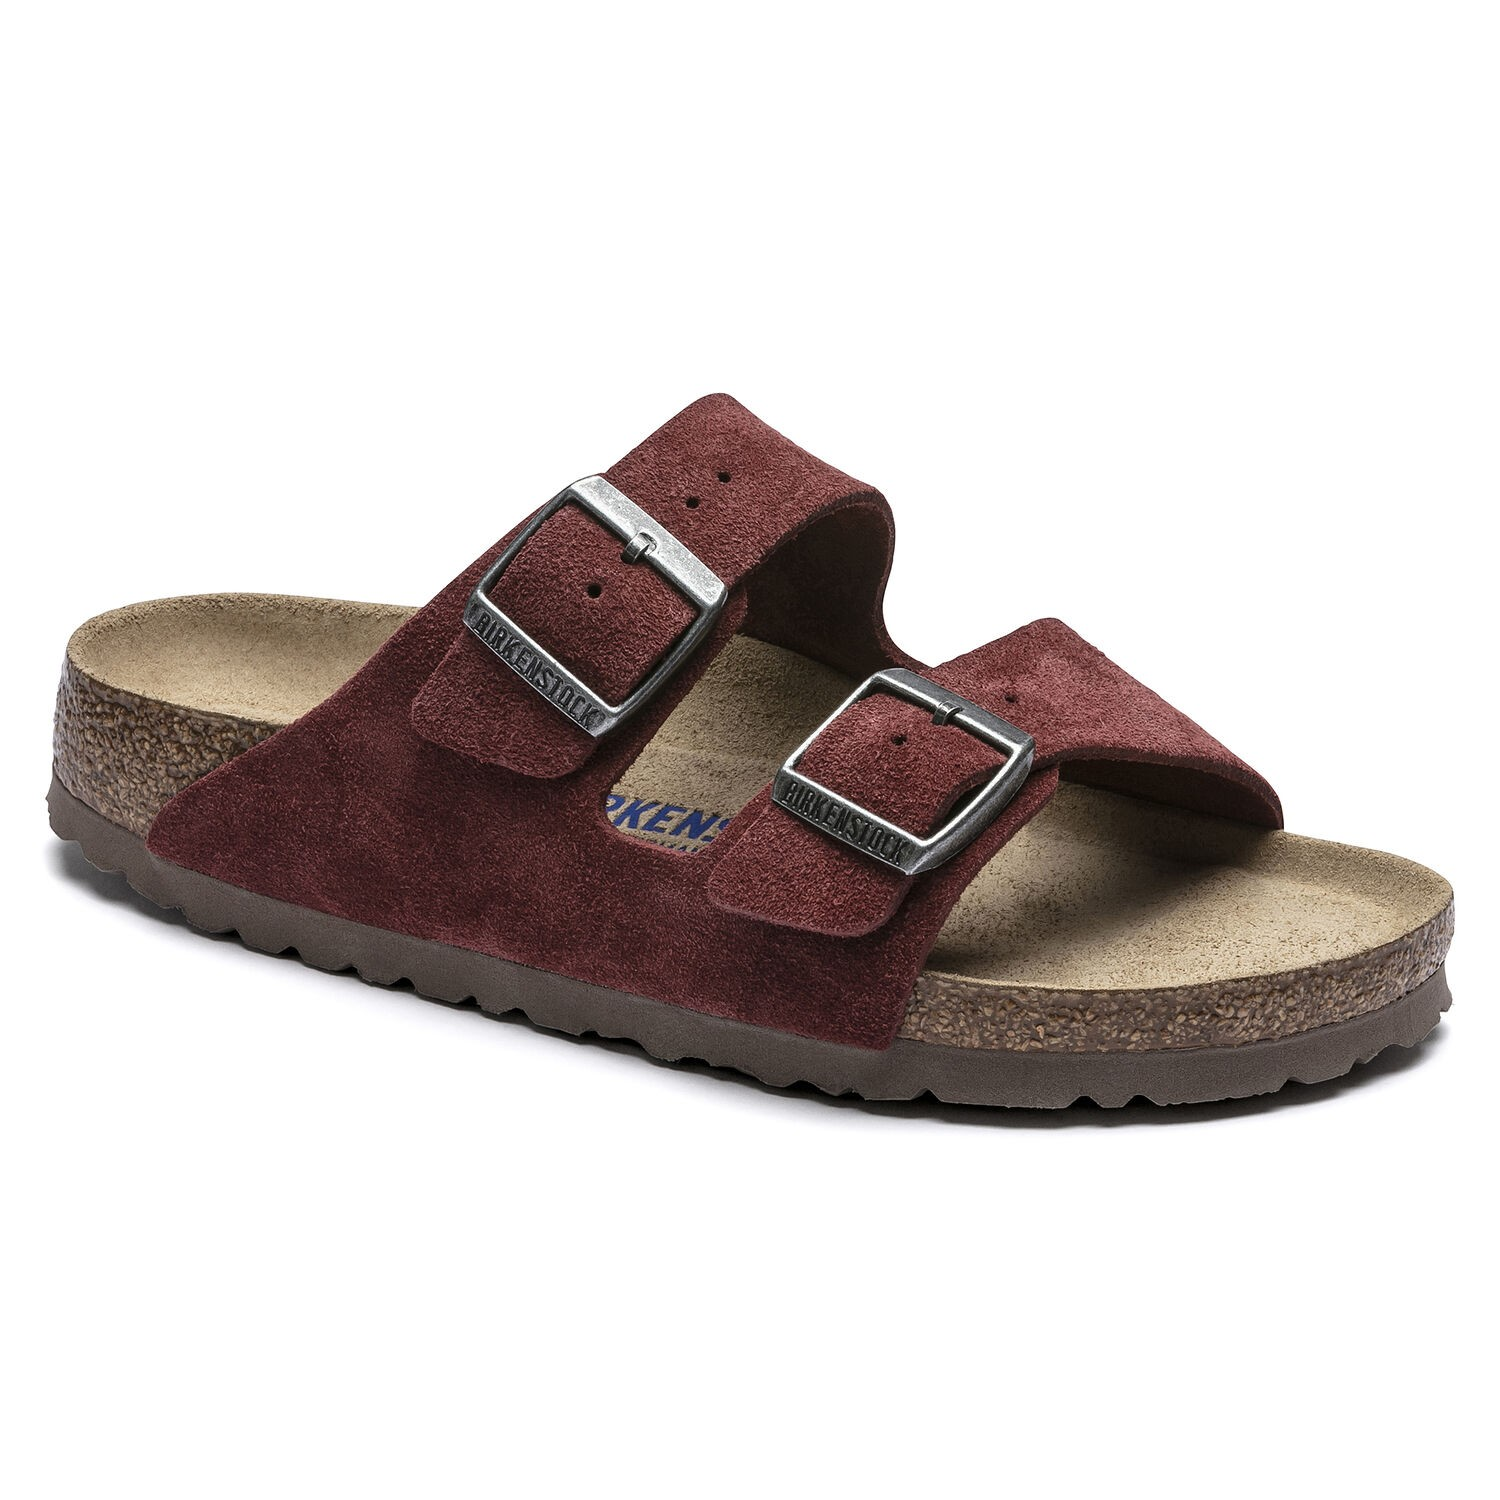 Birkenstock Arizona SFB VL Vermouth Narrow